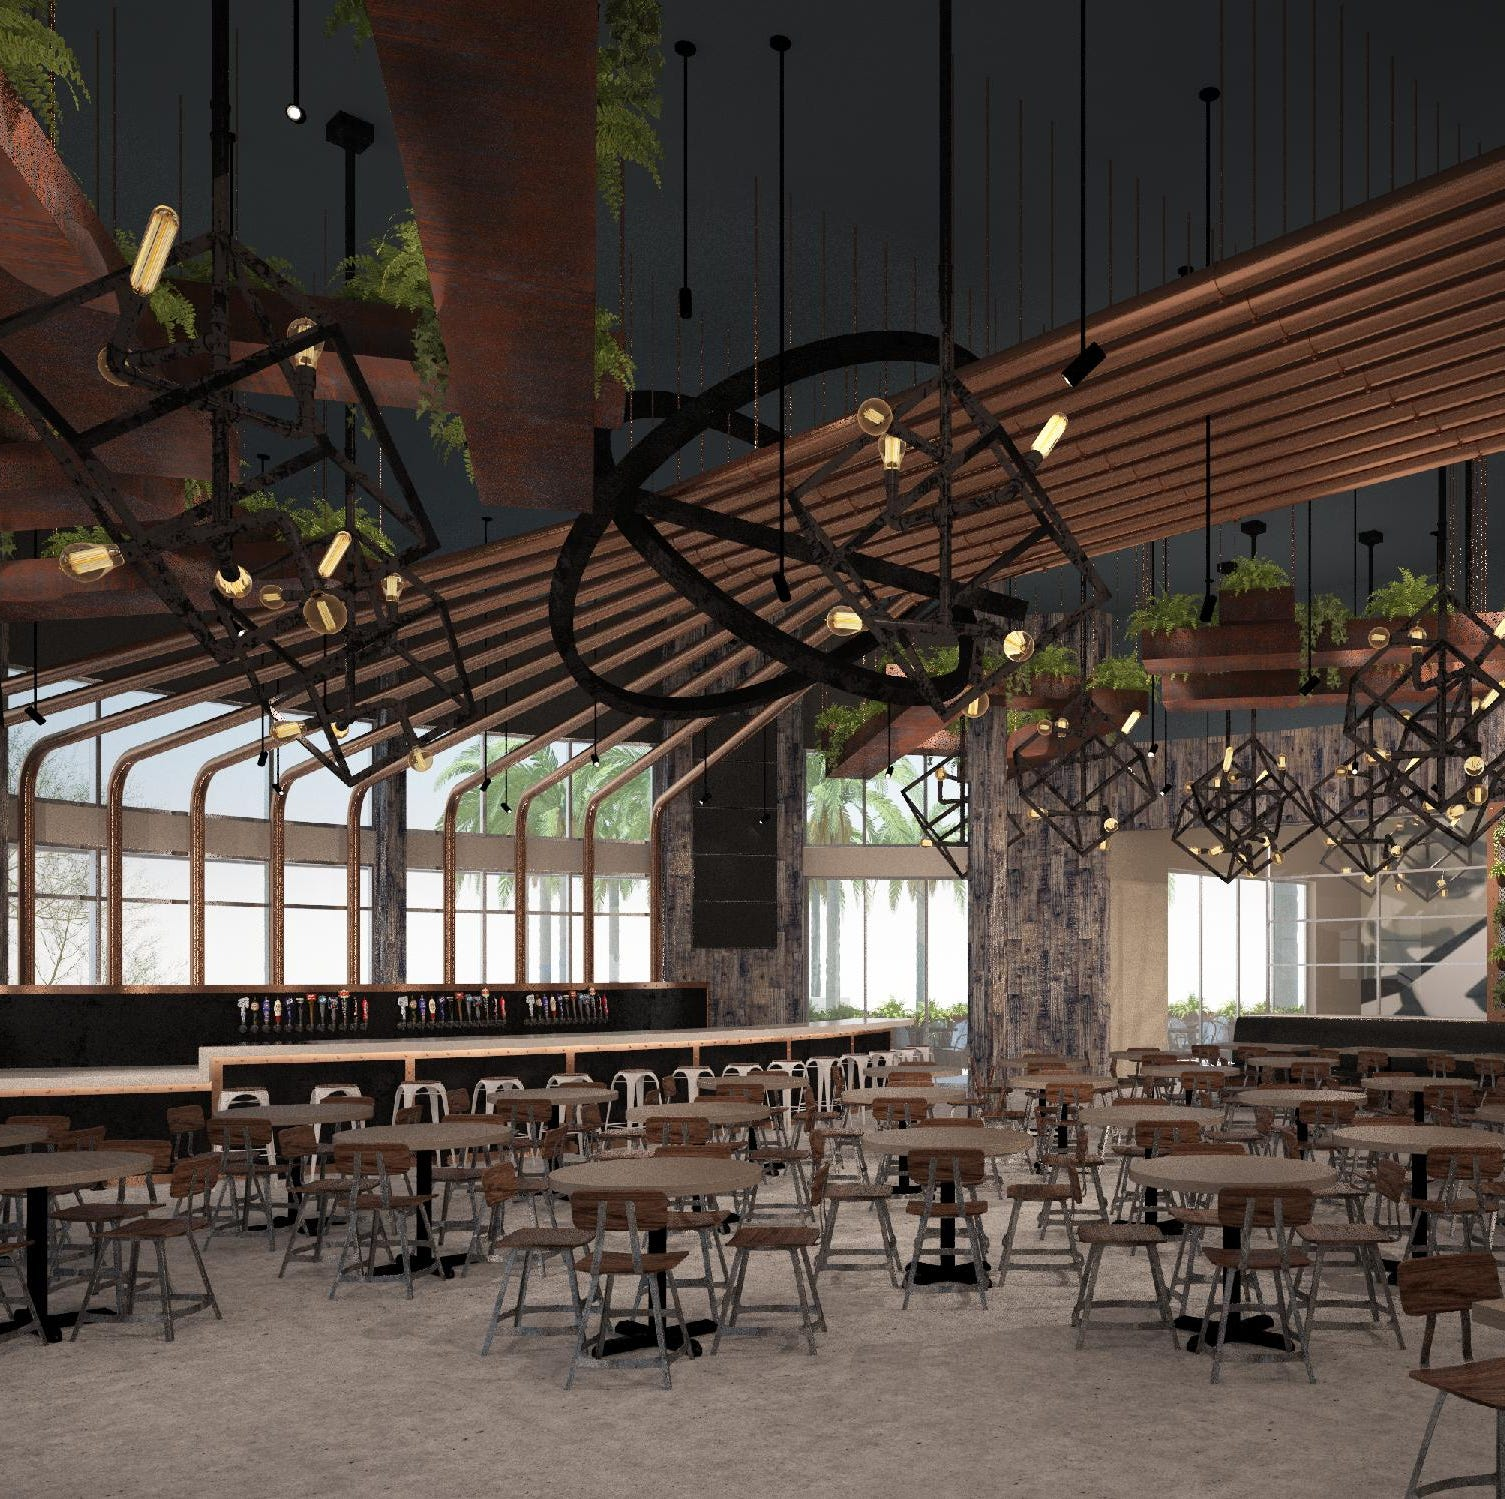 CB Live hiring 150 for restaurant, entertainment venue at Desert Ridge in Phoenix